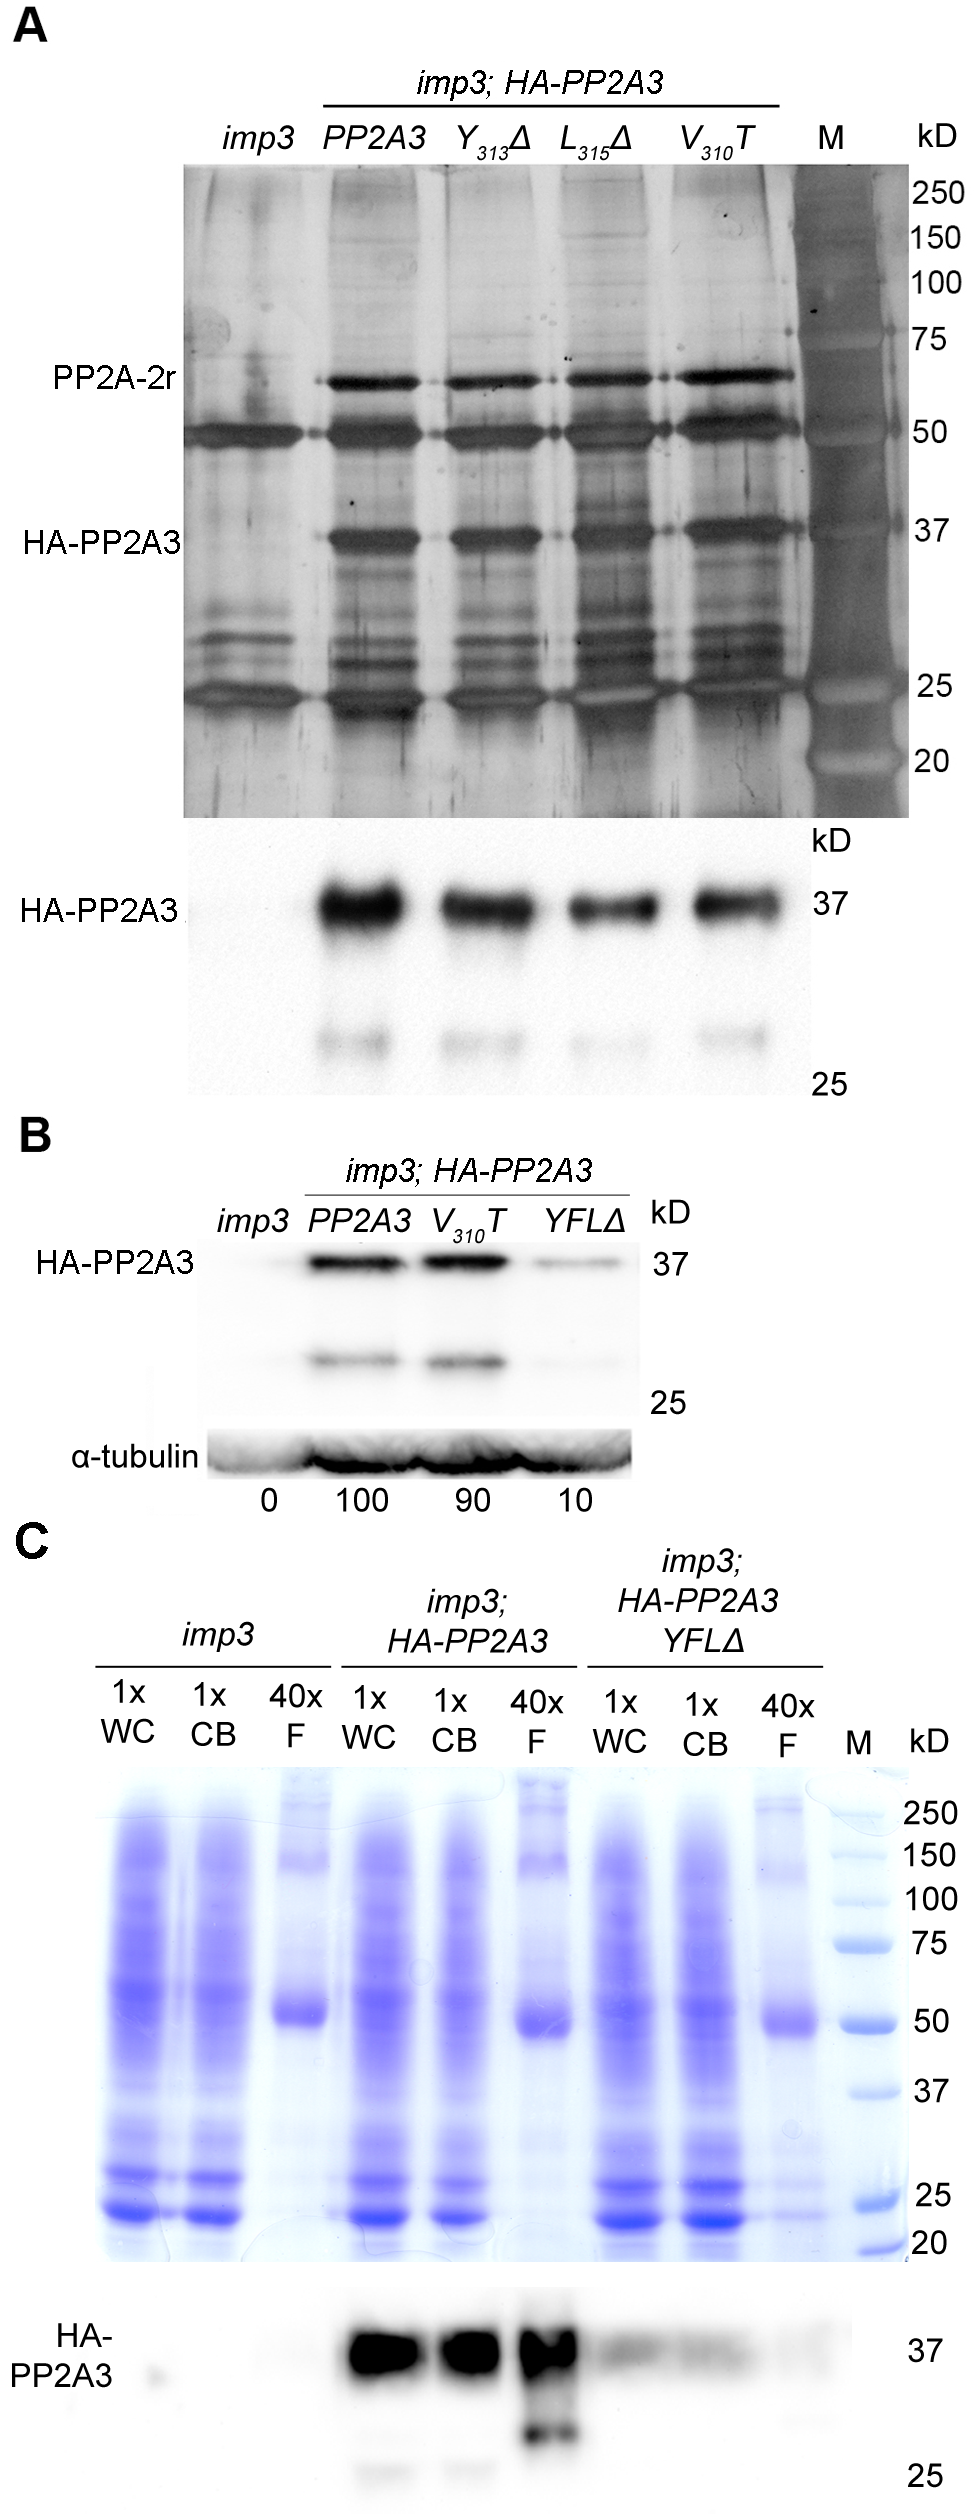 HA-PP2A3 interacts with a scaffold subunit protein and localizes to the flagella.